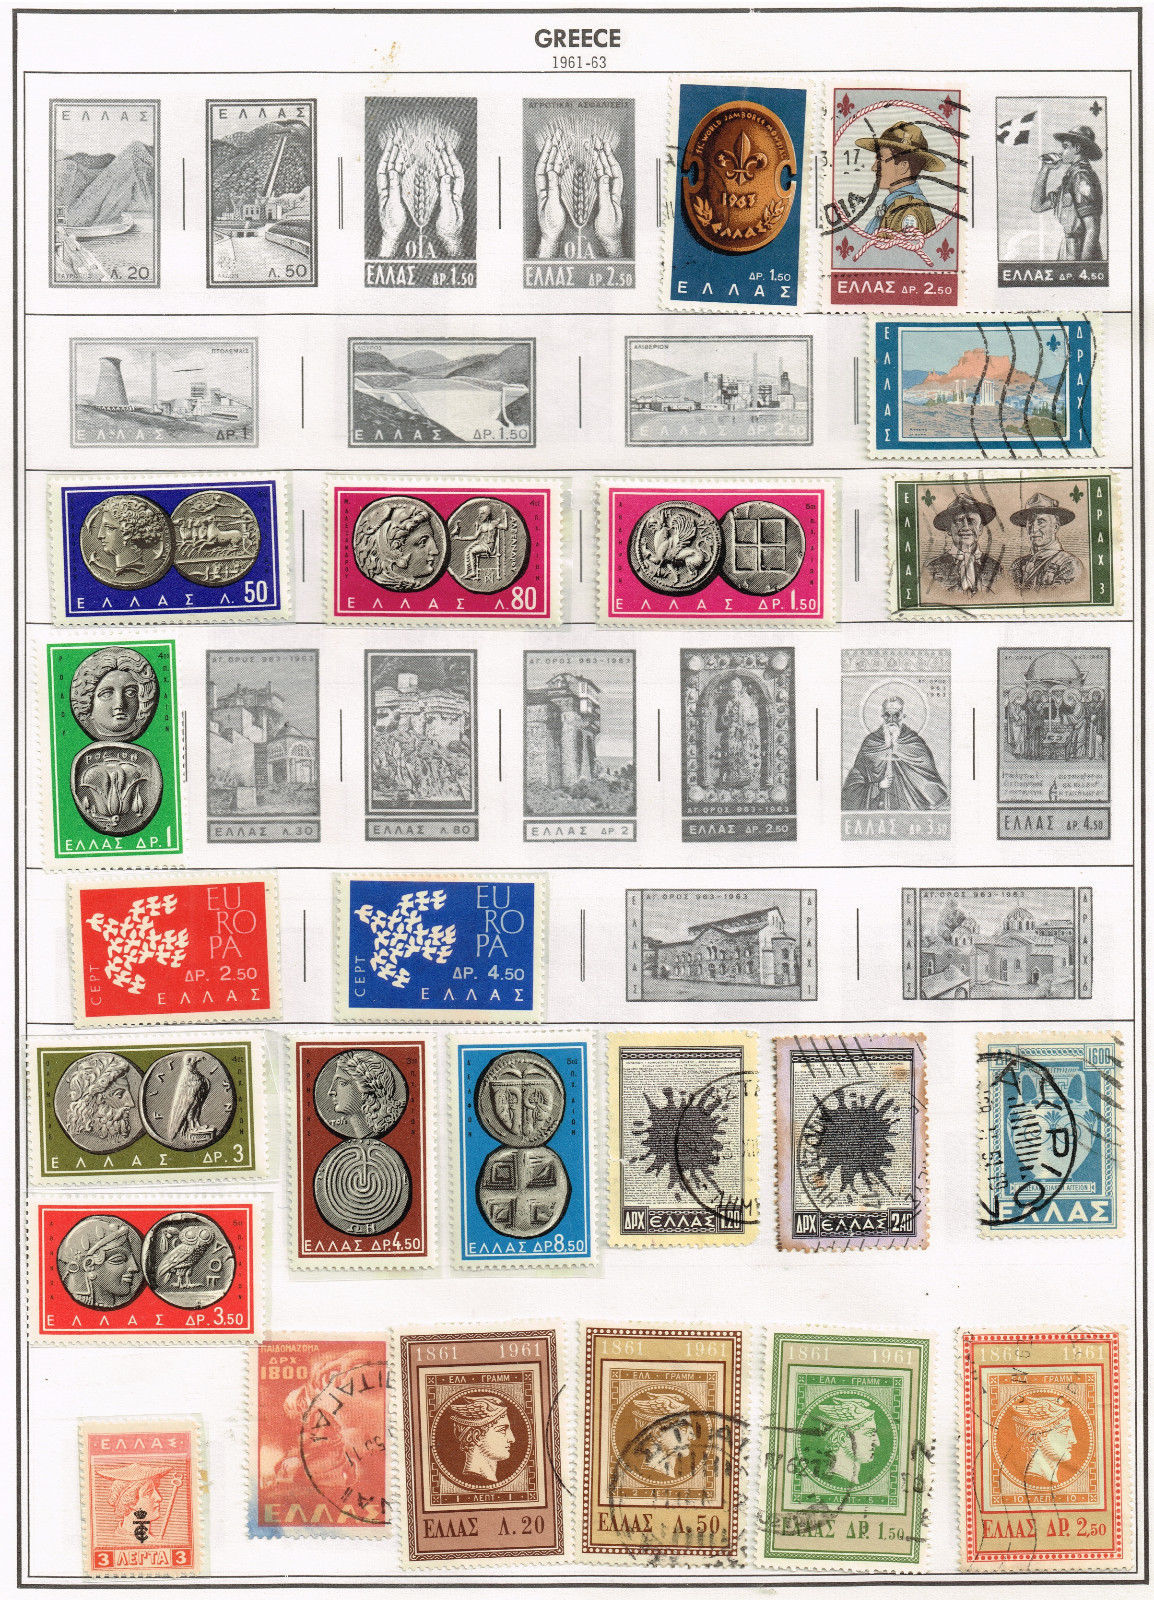 110 Greece 1961 - 1971 stamps